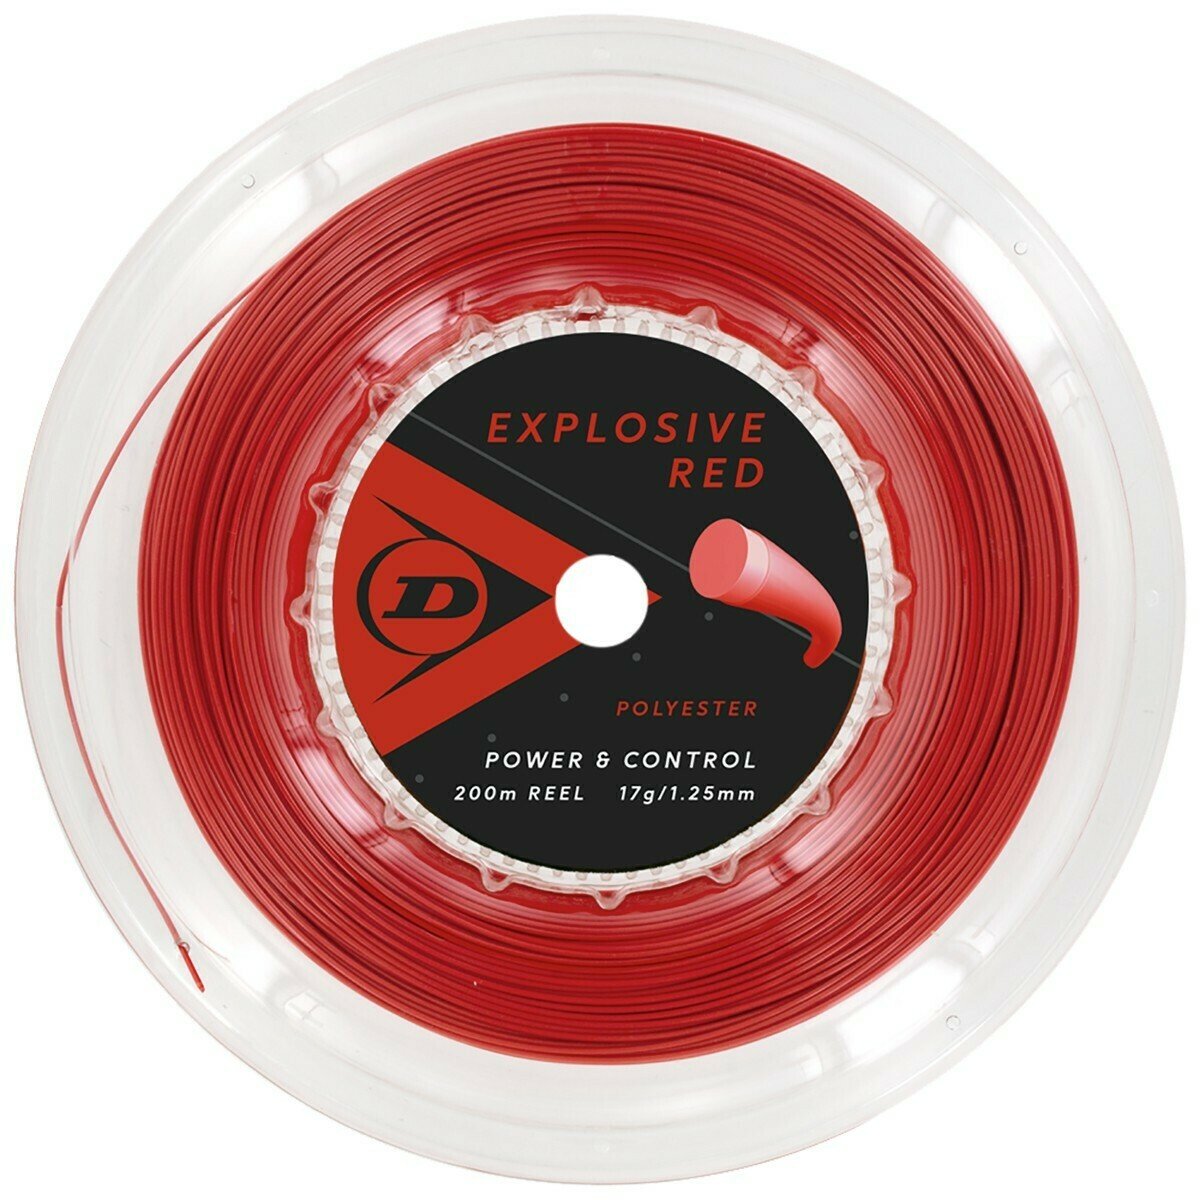 Dunlop Explosive Red 200m Reel Tennis String